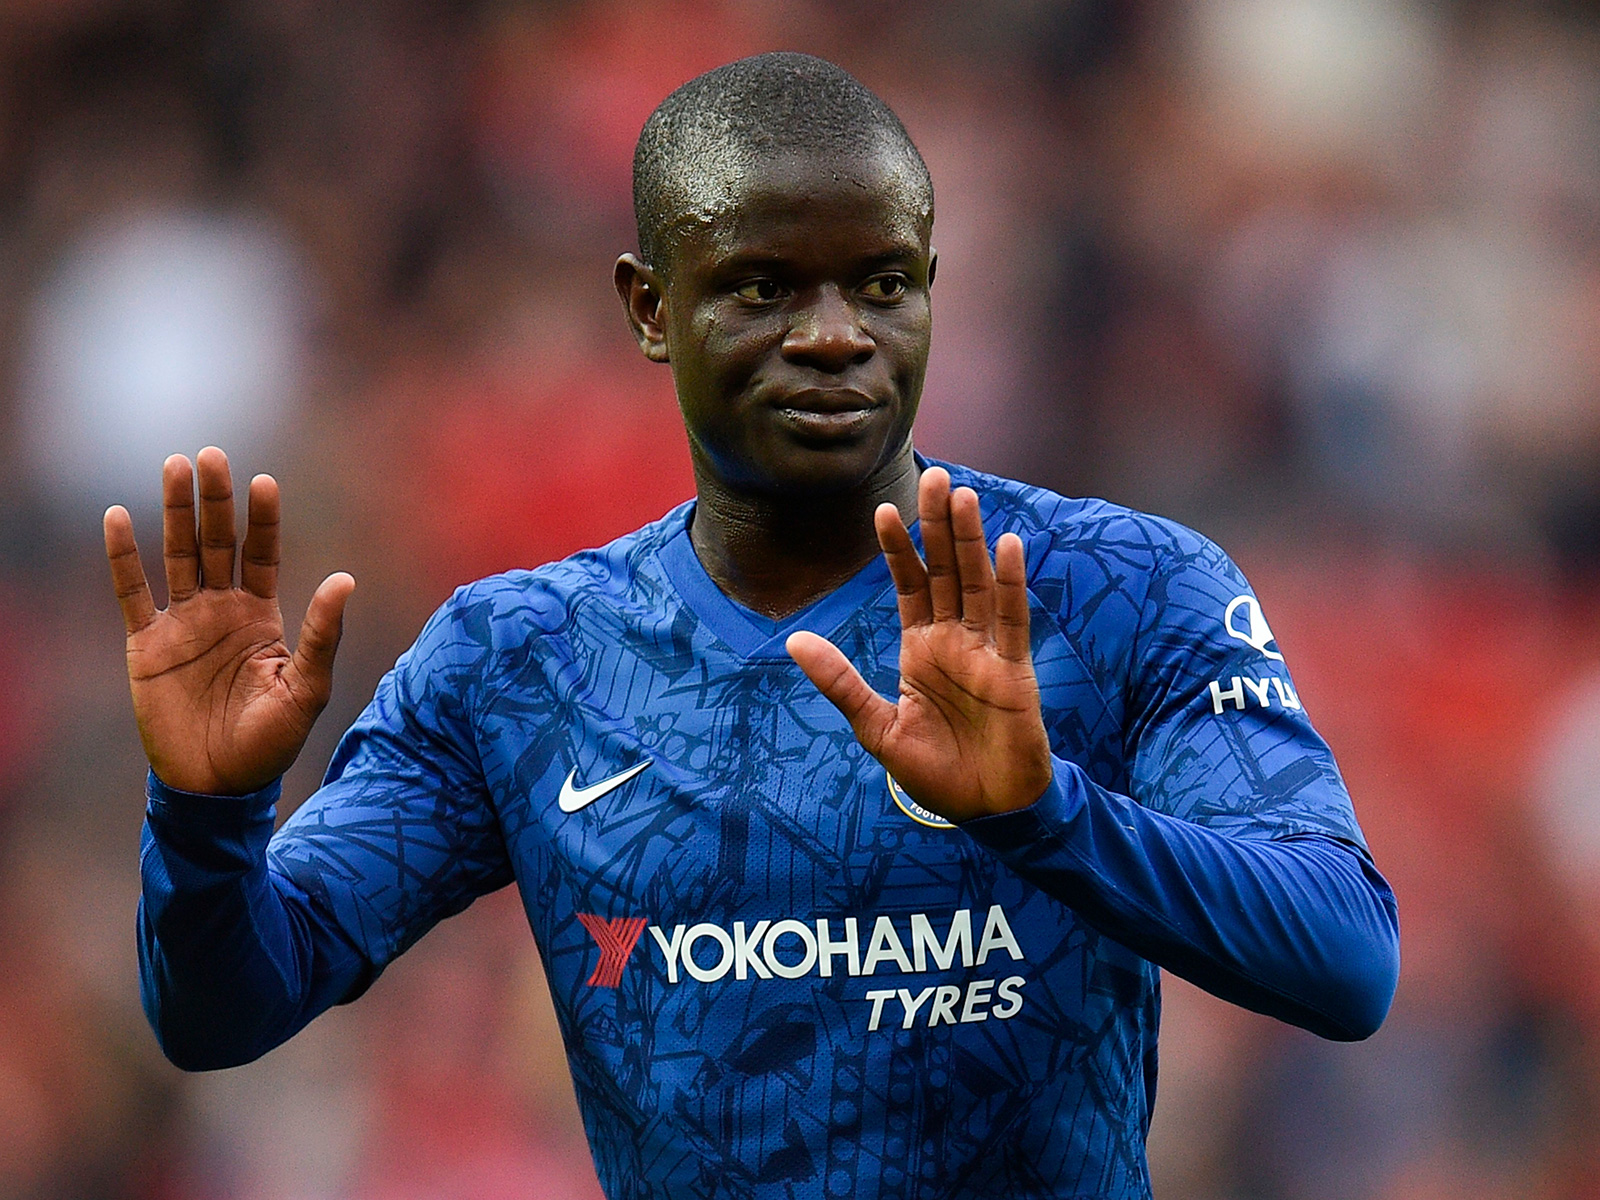 N'Golo Kante's return is invaluable for Chelsea